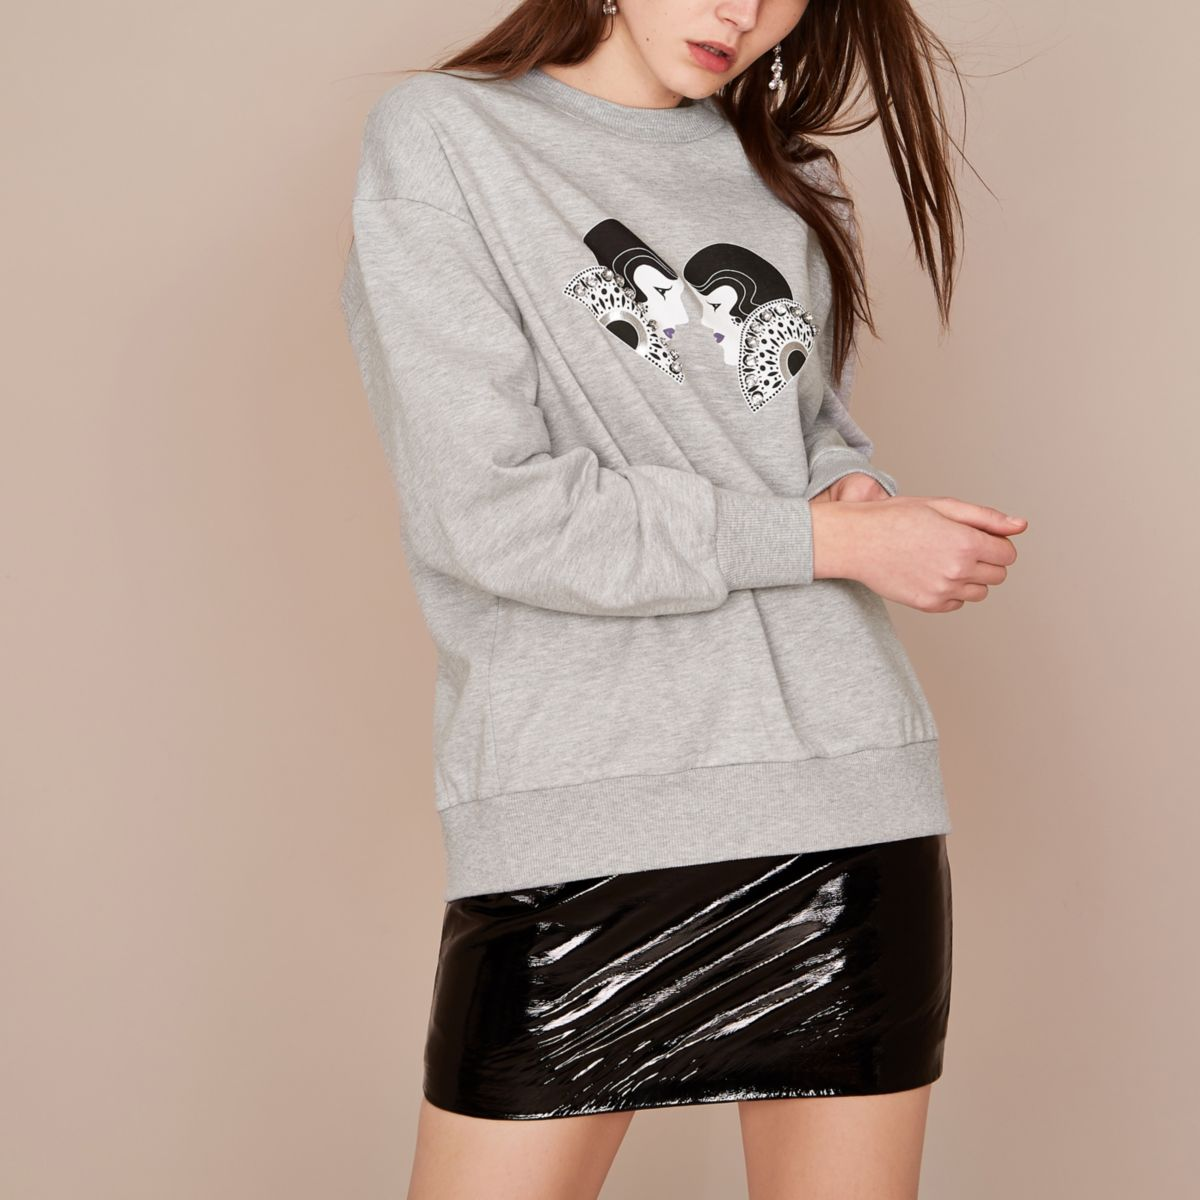 Grey Holly Fulton embellished sweatshirt